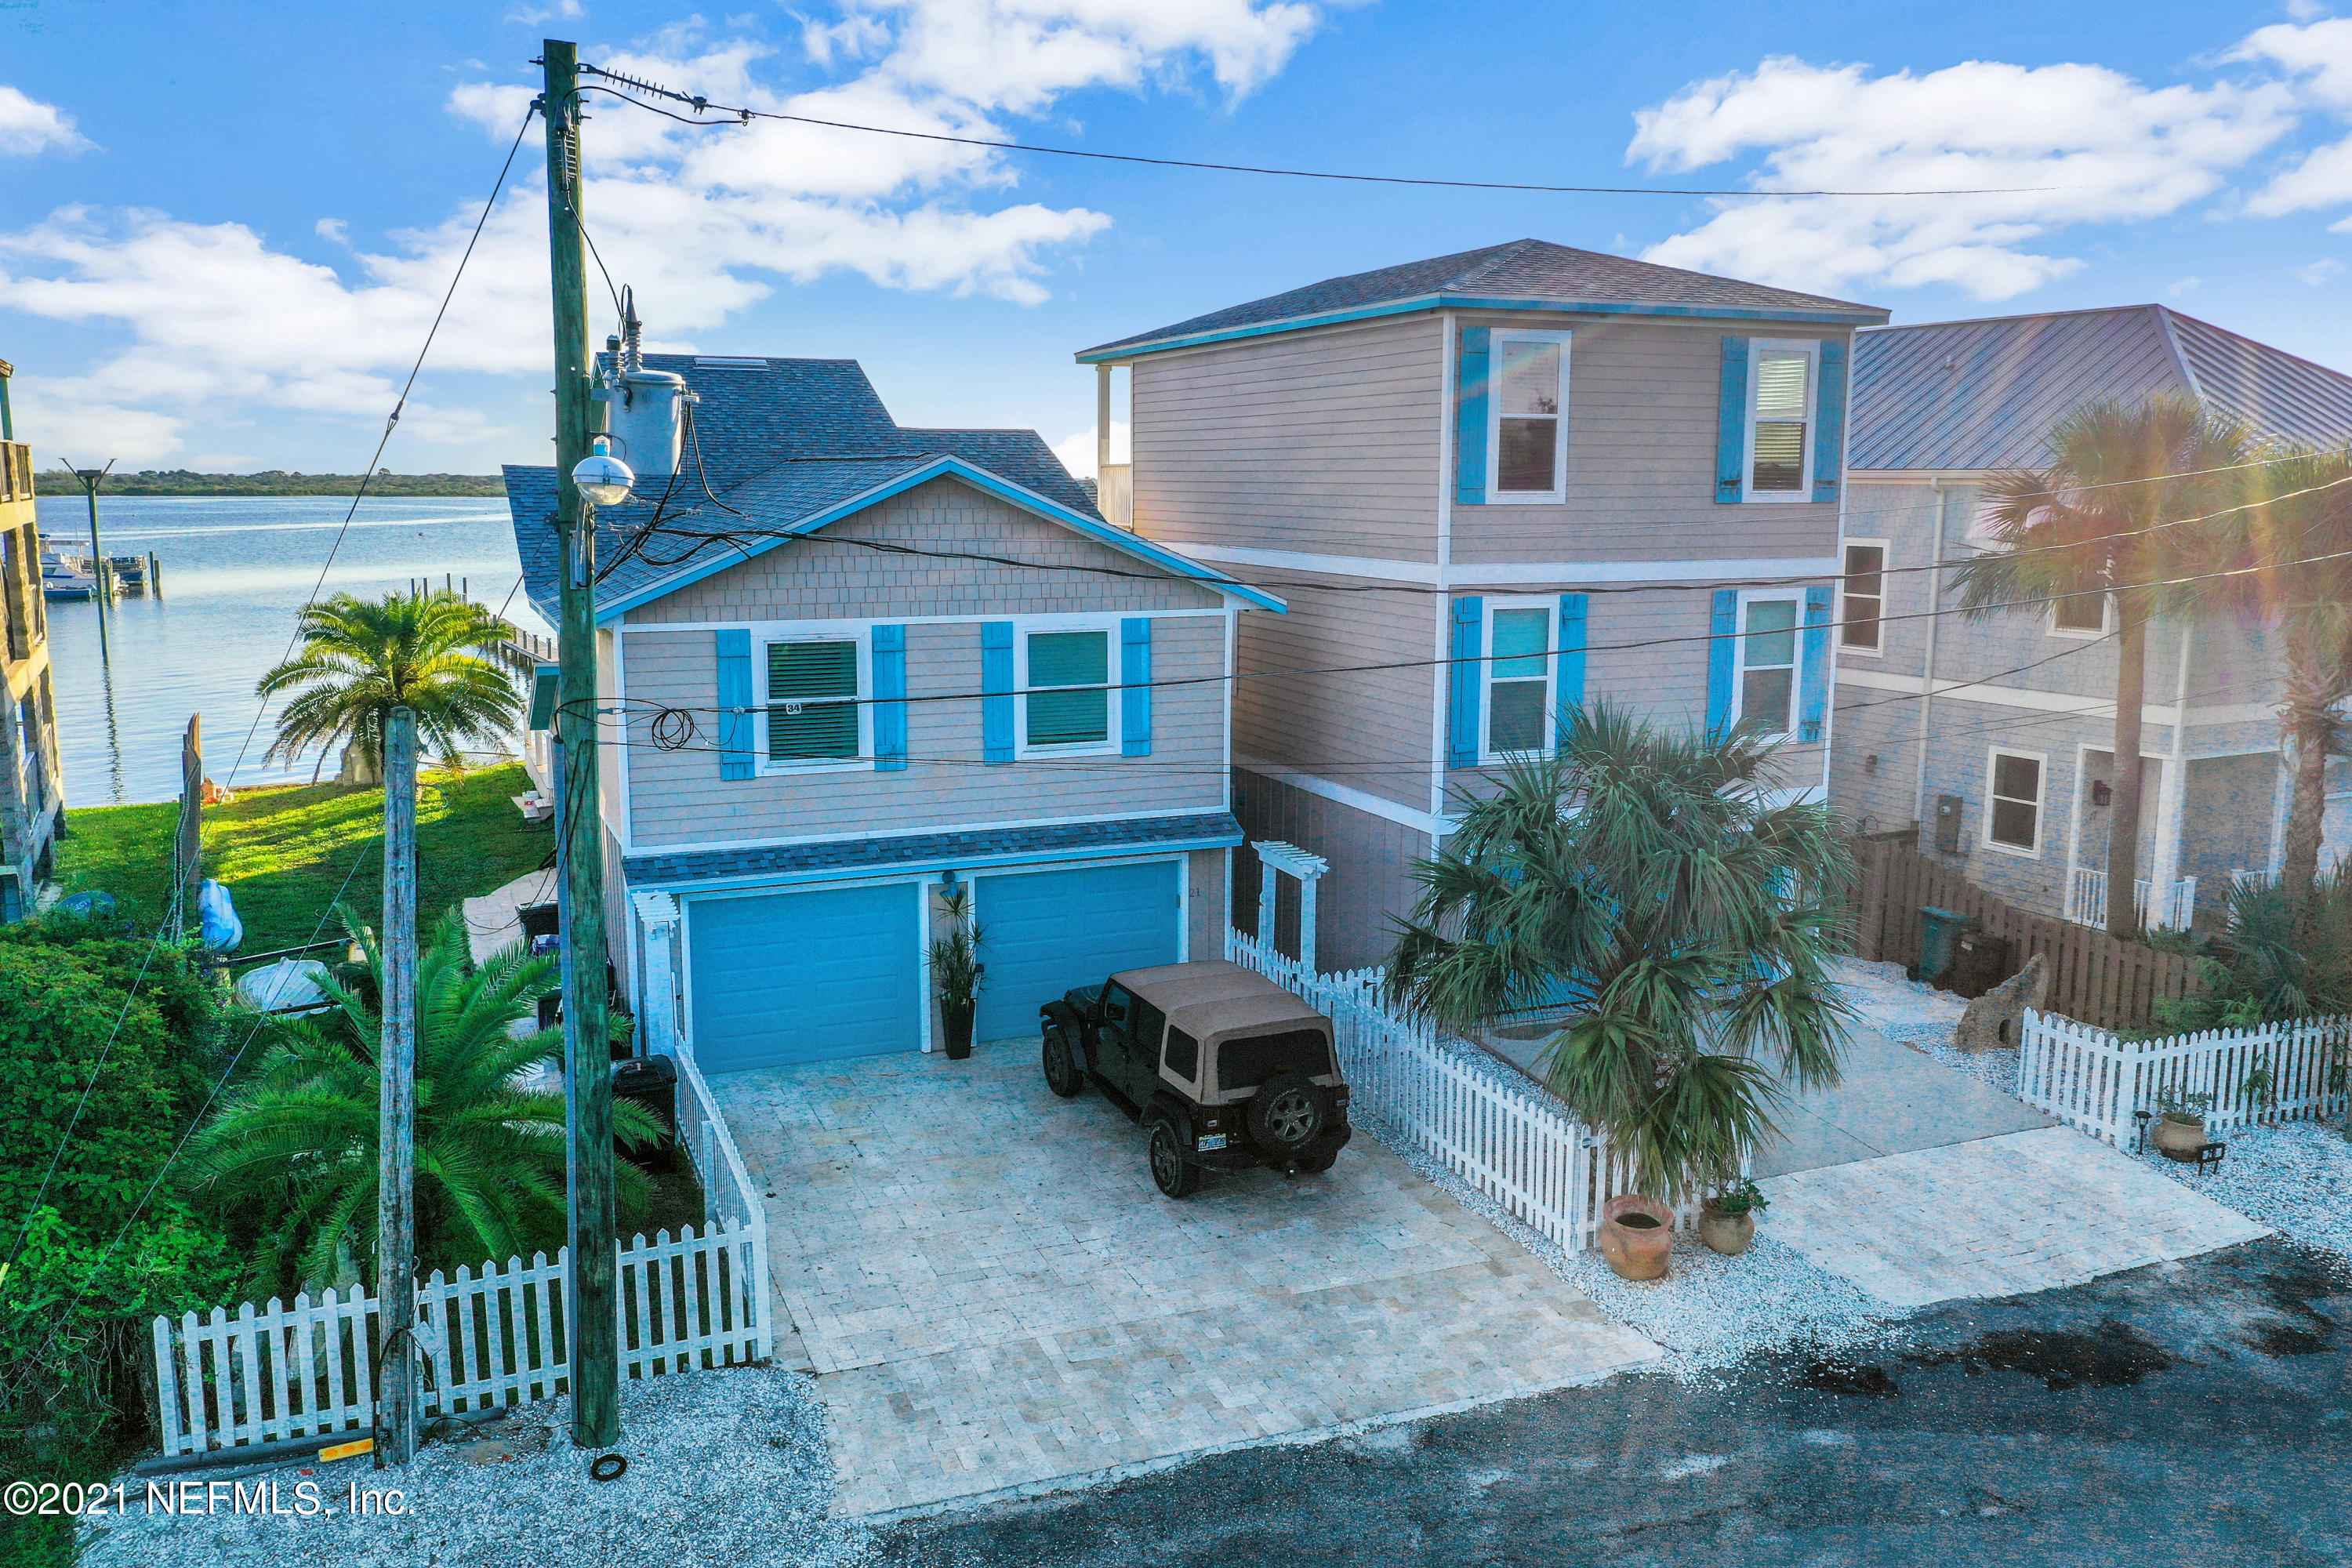 Come and see this breathtaking waterfront home with intracoastal views located on Salt Run! Take your boat out from your private dock in a no wake zone and then come back and soak in your saltwater pool . The dock can support 50'+ sport fisher!!! This property has a total of 4,745 square feet. There is a main house with 2776 sq ft, that includes 5 bedrooms and 3.5 bathrooms and plenty of additional living space. The main house also includes a 2 car garage. It is beautifully remodeled with new bathrooms, new kitchen, new plumbing, and spectacular lighting and travertine flooring. This property also has a detached 3 story home with an additional 2 car garage on the ground level and then the upper two levels of living space. When you step onto the second floor you will find 2 bedrooms and a Jack and Jill bathroom. On the third story there is an open plan kitchen and living room . While on the third floor you must step out onto the deck and you will see stunning views of the ocean , the intracoastal , and the lighthouse. This is a very highly sought after area of town to live in and this home is amazing and unique. This property won't last long!